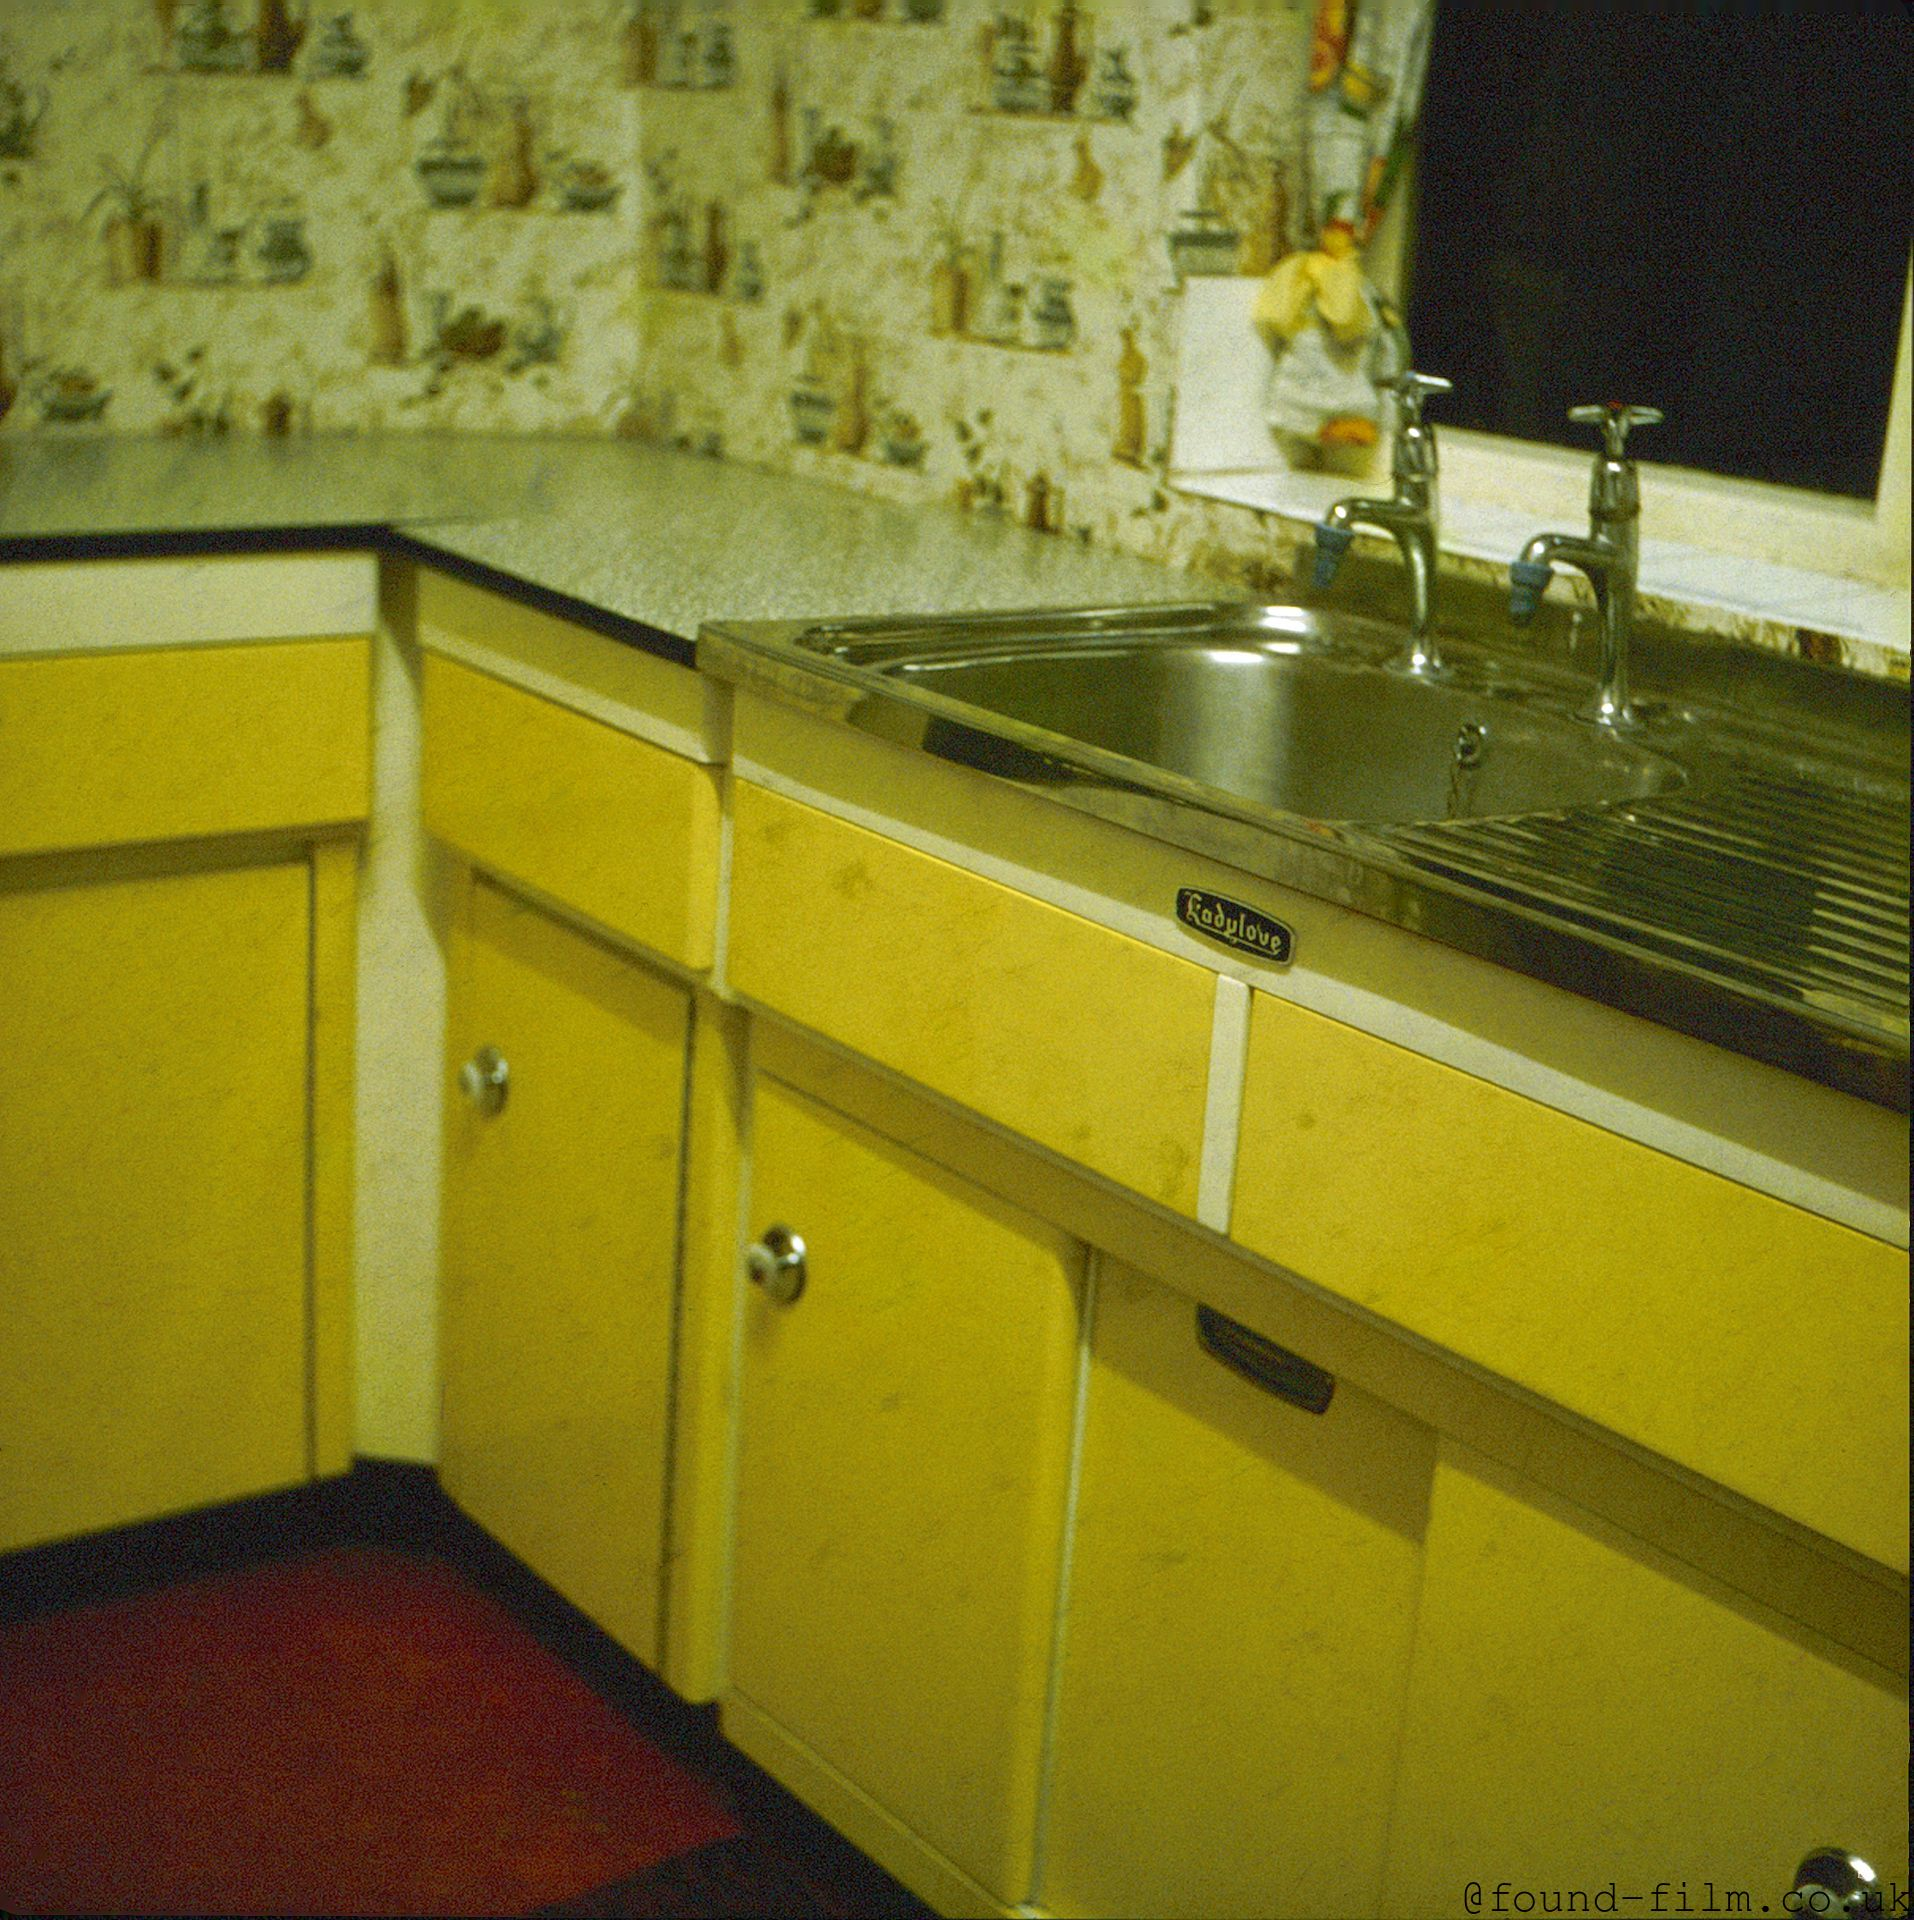 The Kitchen Sink from a 1960s house